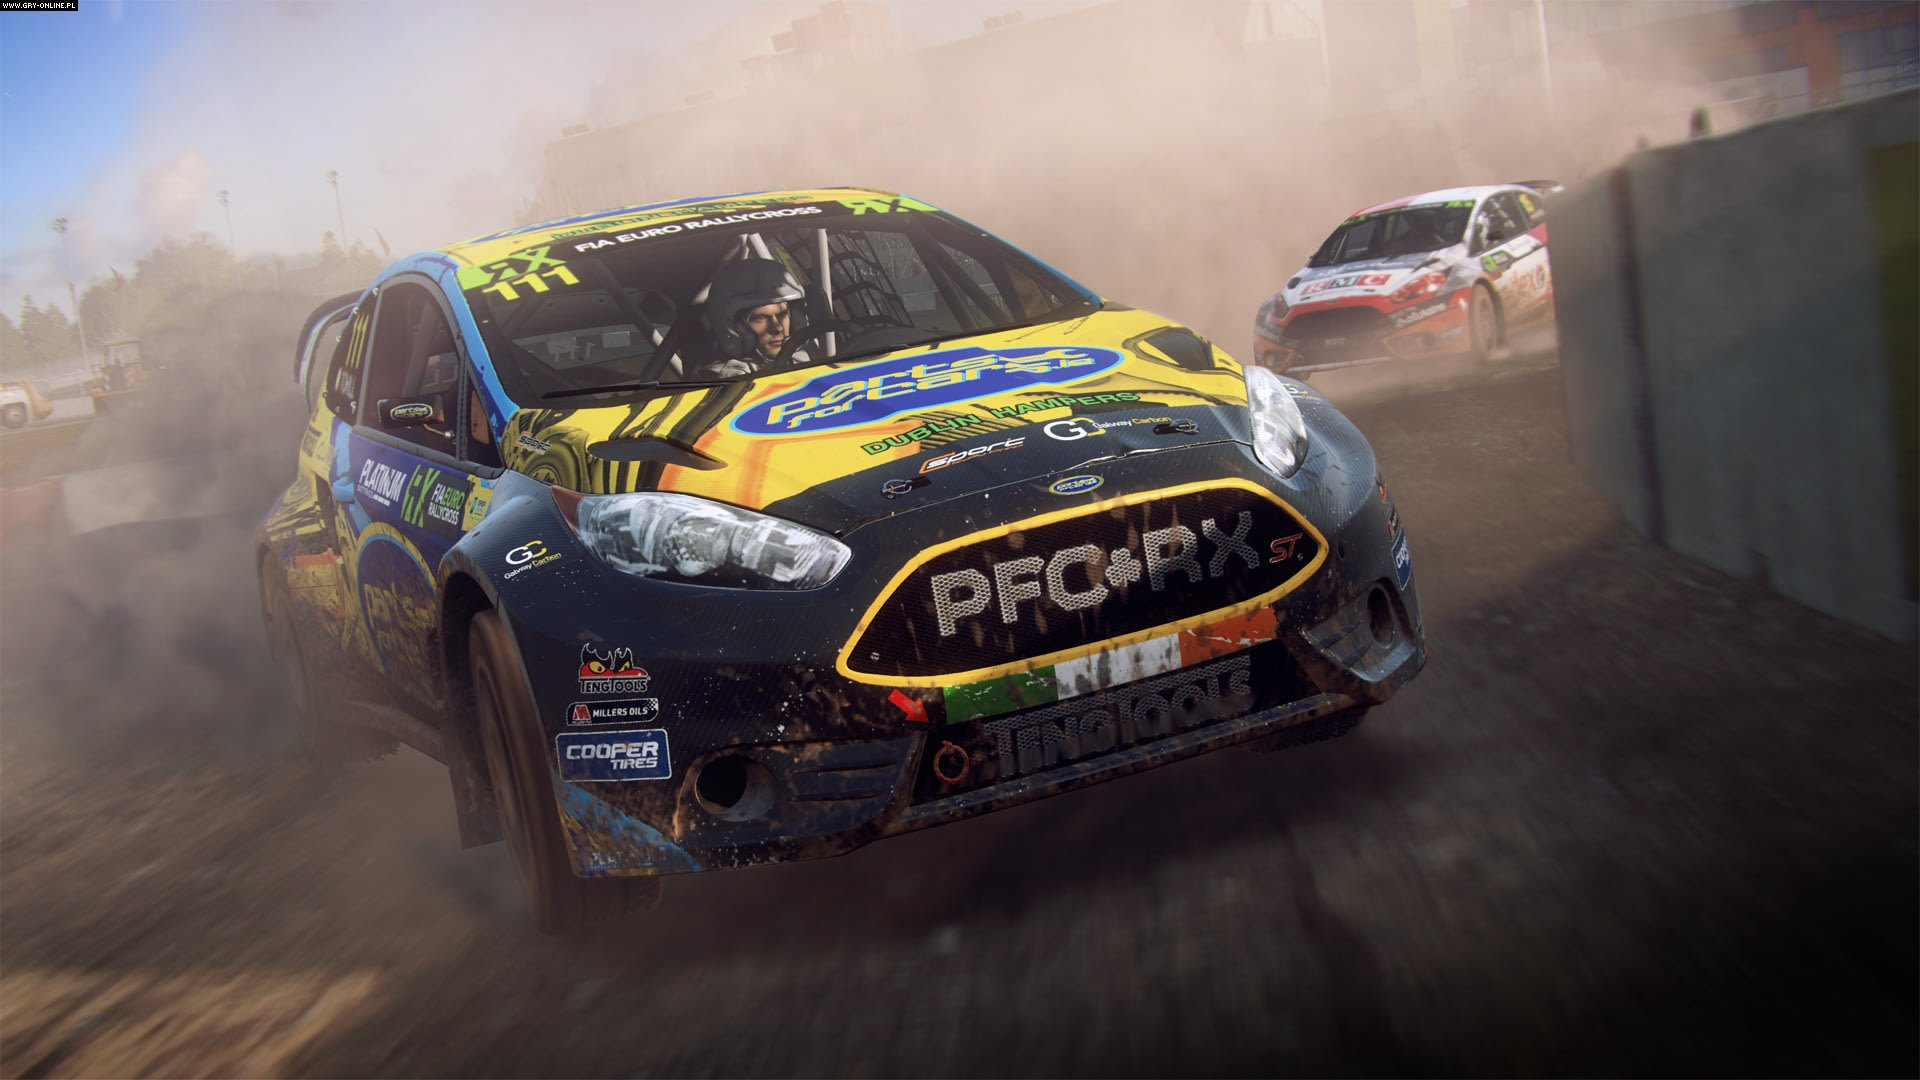 DiRT Rally 2.0 PC, PS4, XONE Gry Screen 41/49, Codemasters Software